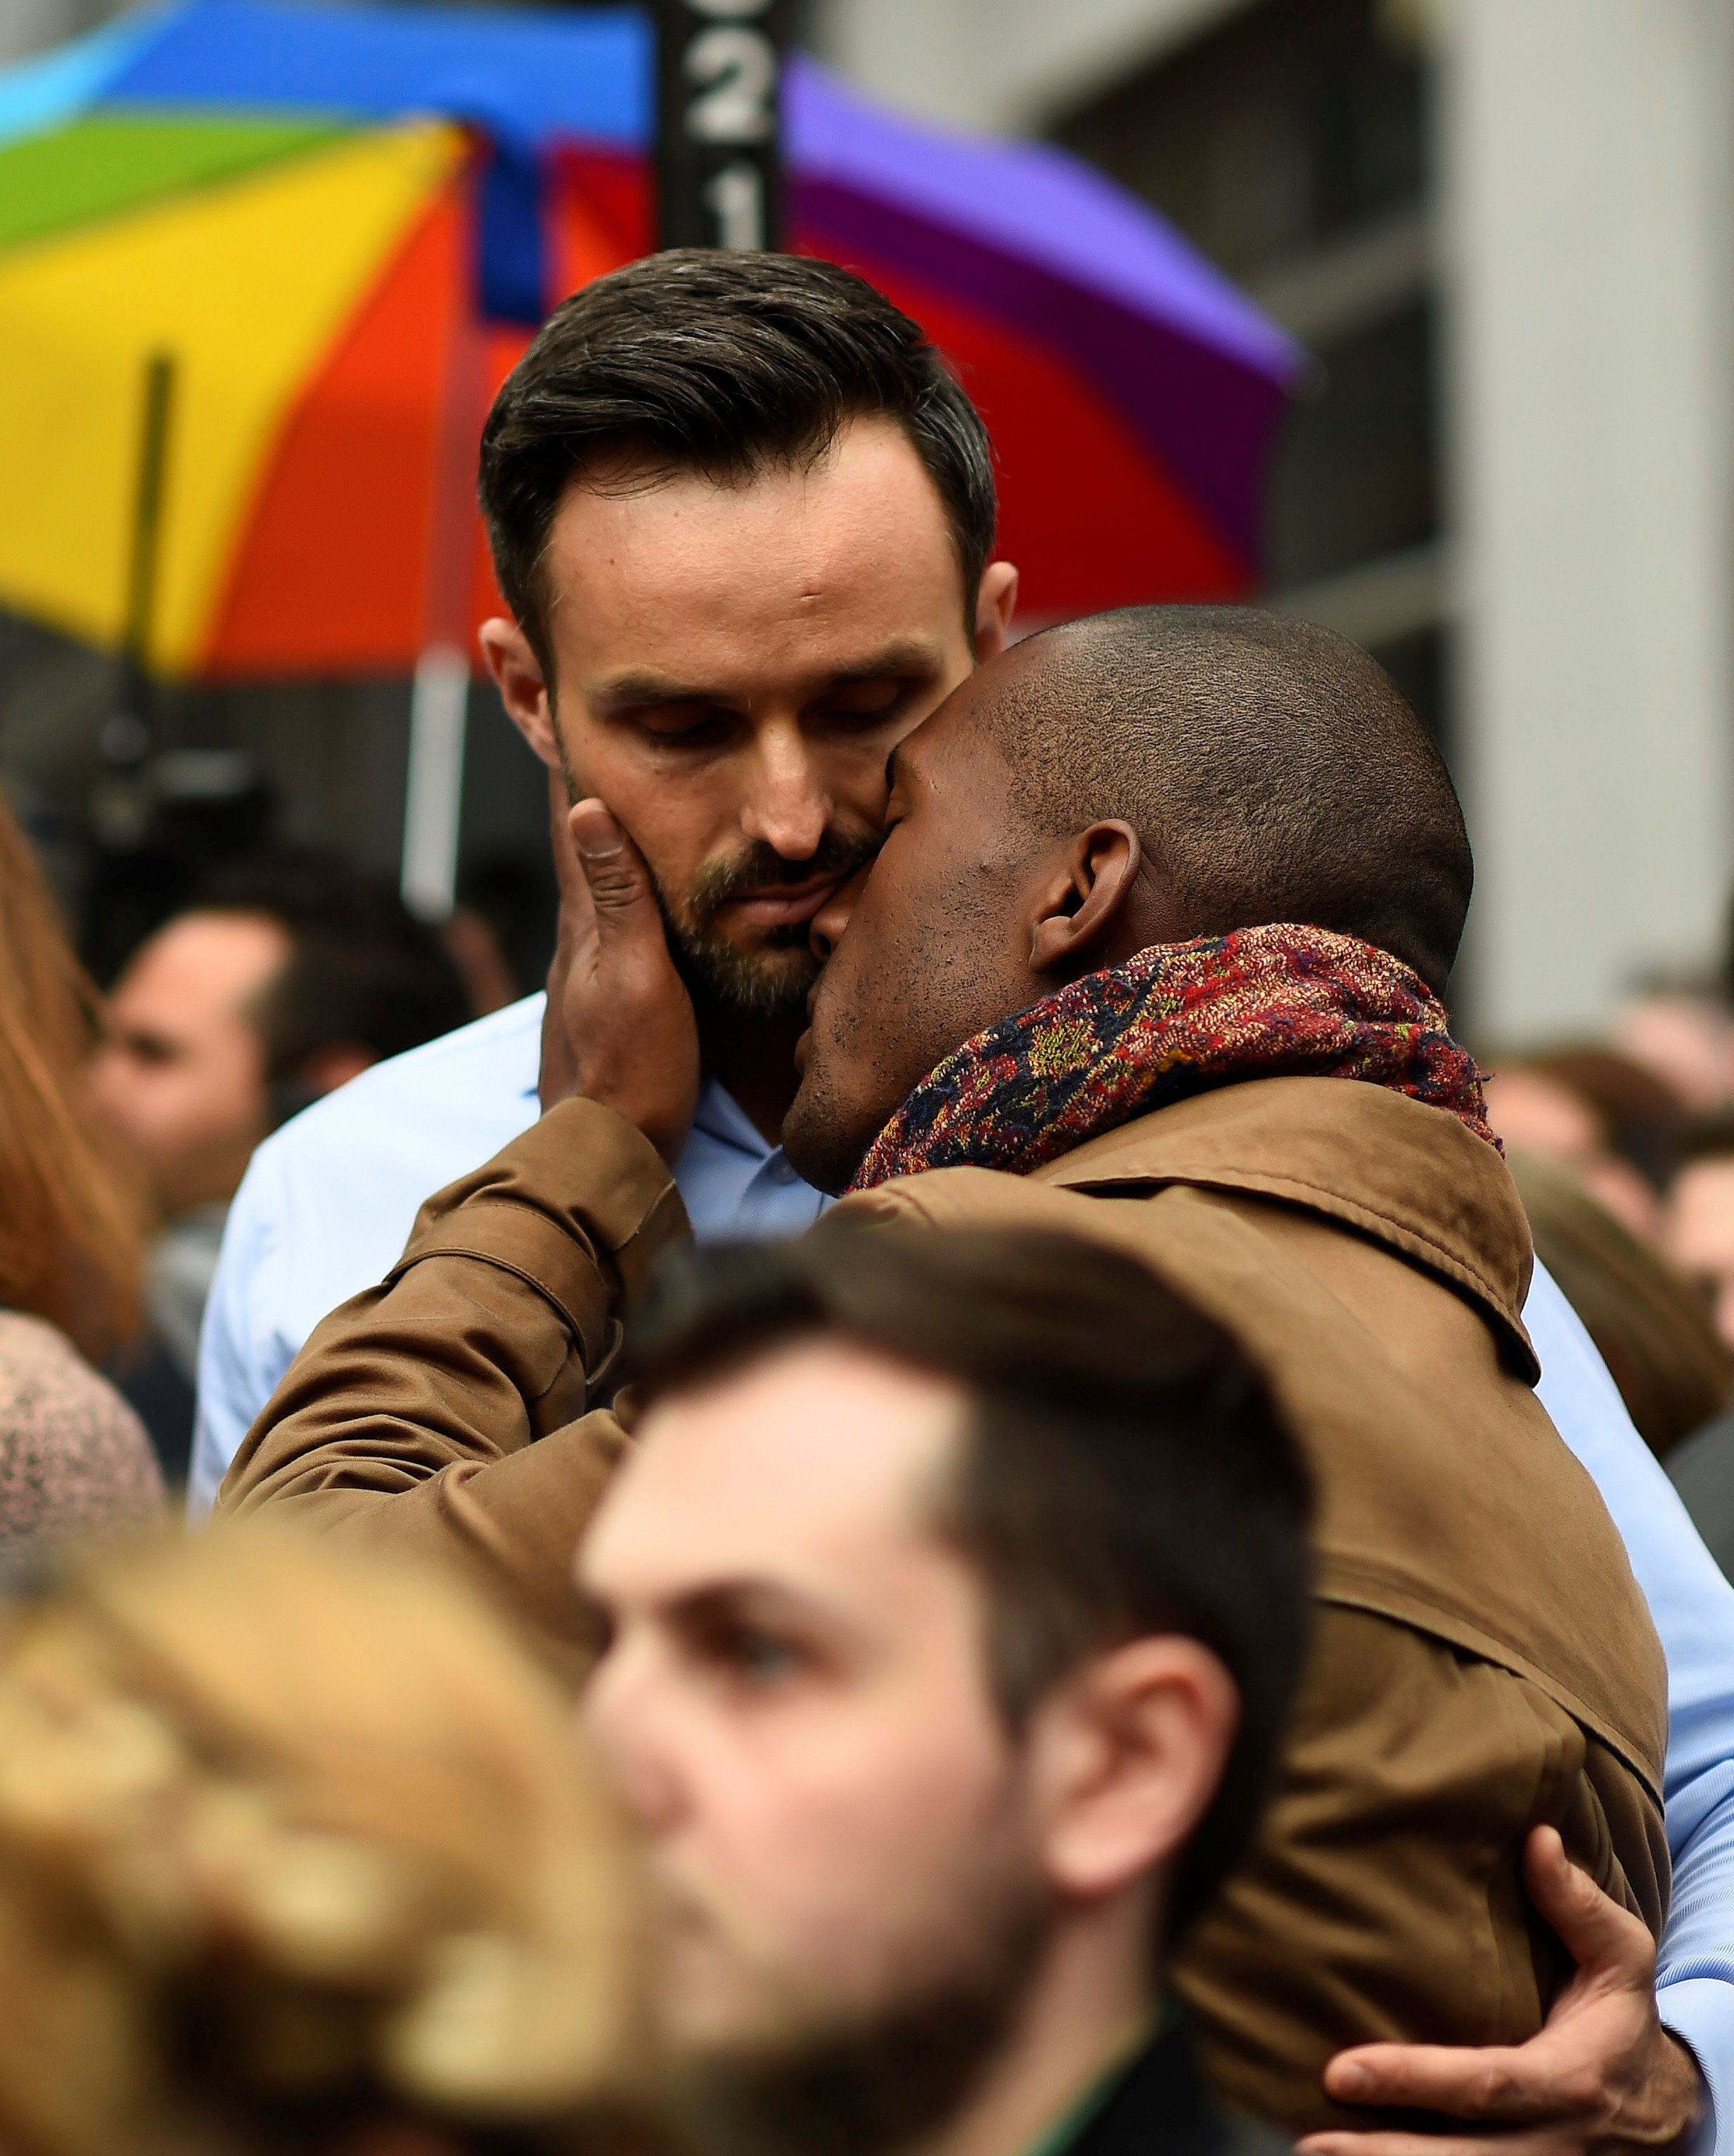 Men embrace during a minute's silence in memory of the victims of the gay nightclub mass shooting in Orlando, in the Soho district of London, June 13, 2016. REUTERS/Dylan Martinez